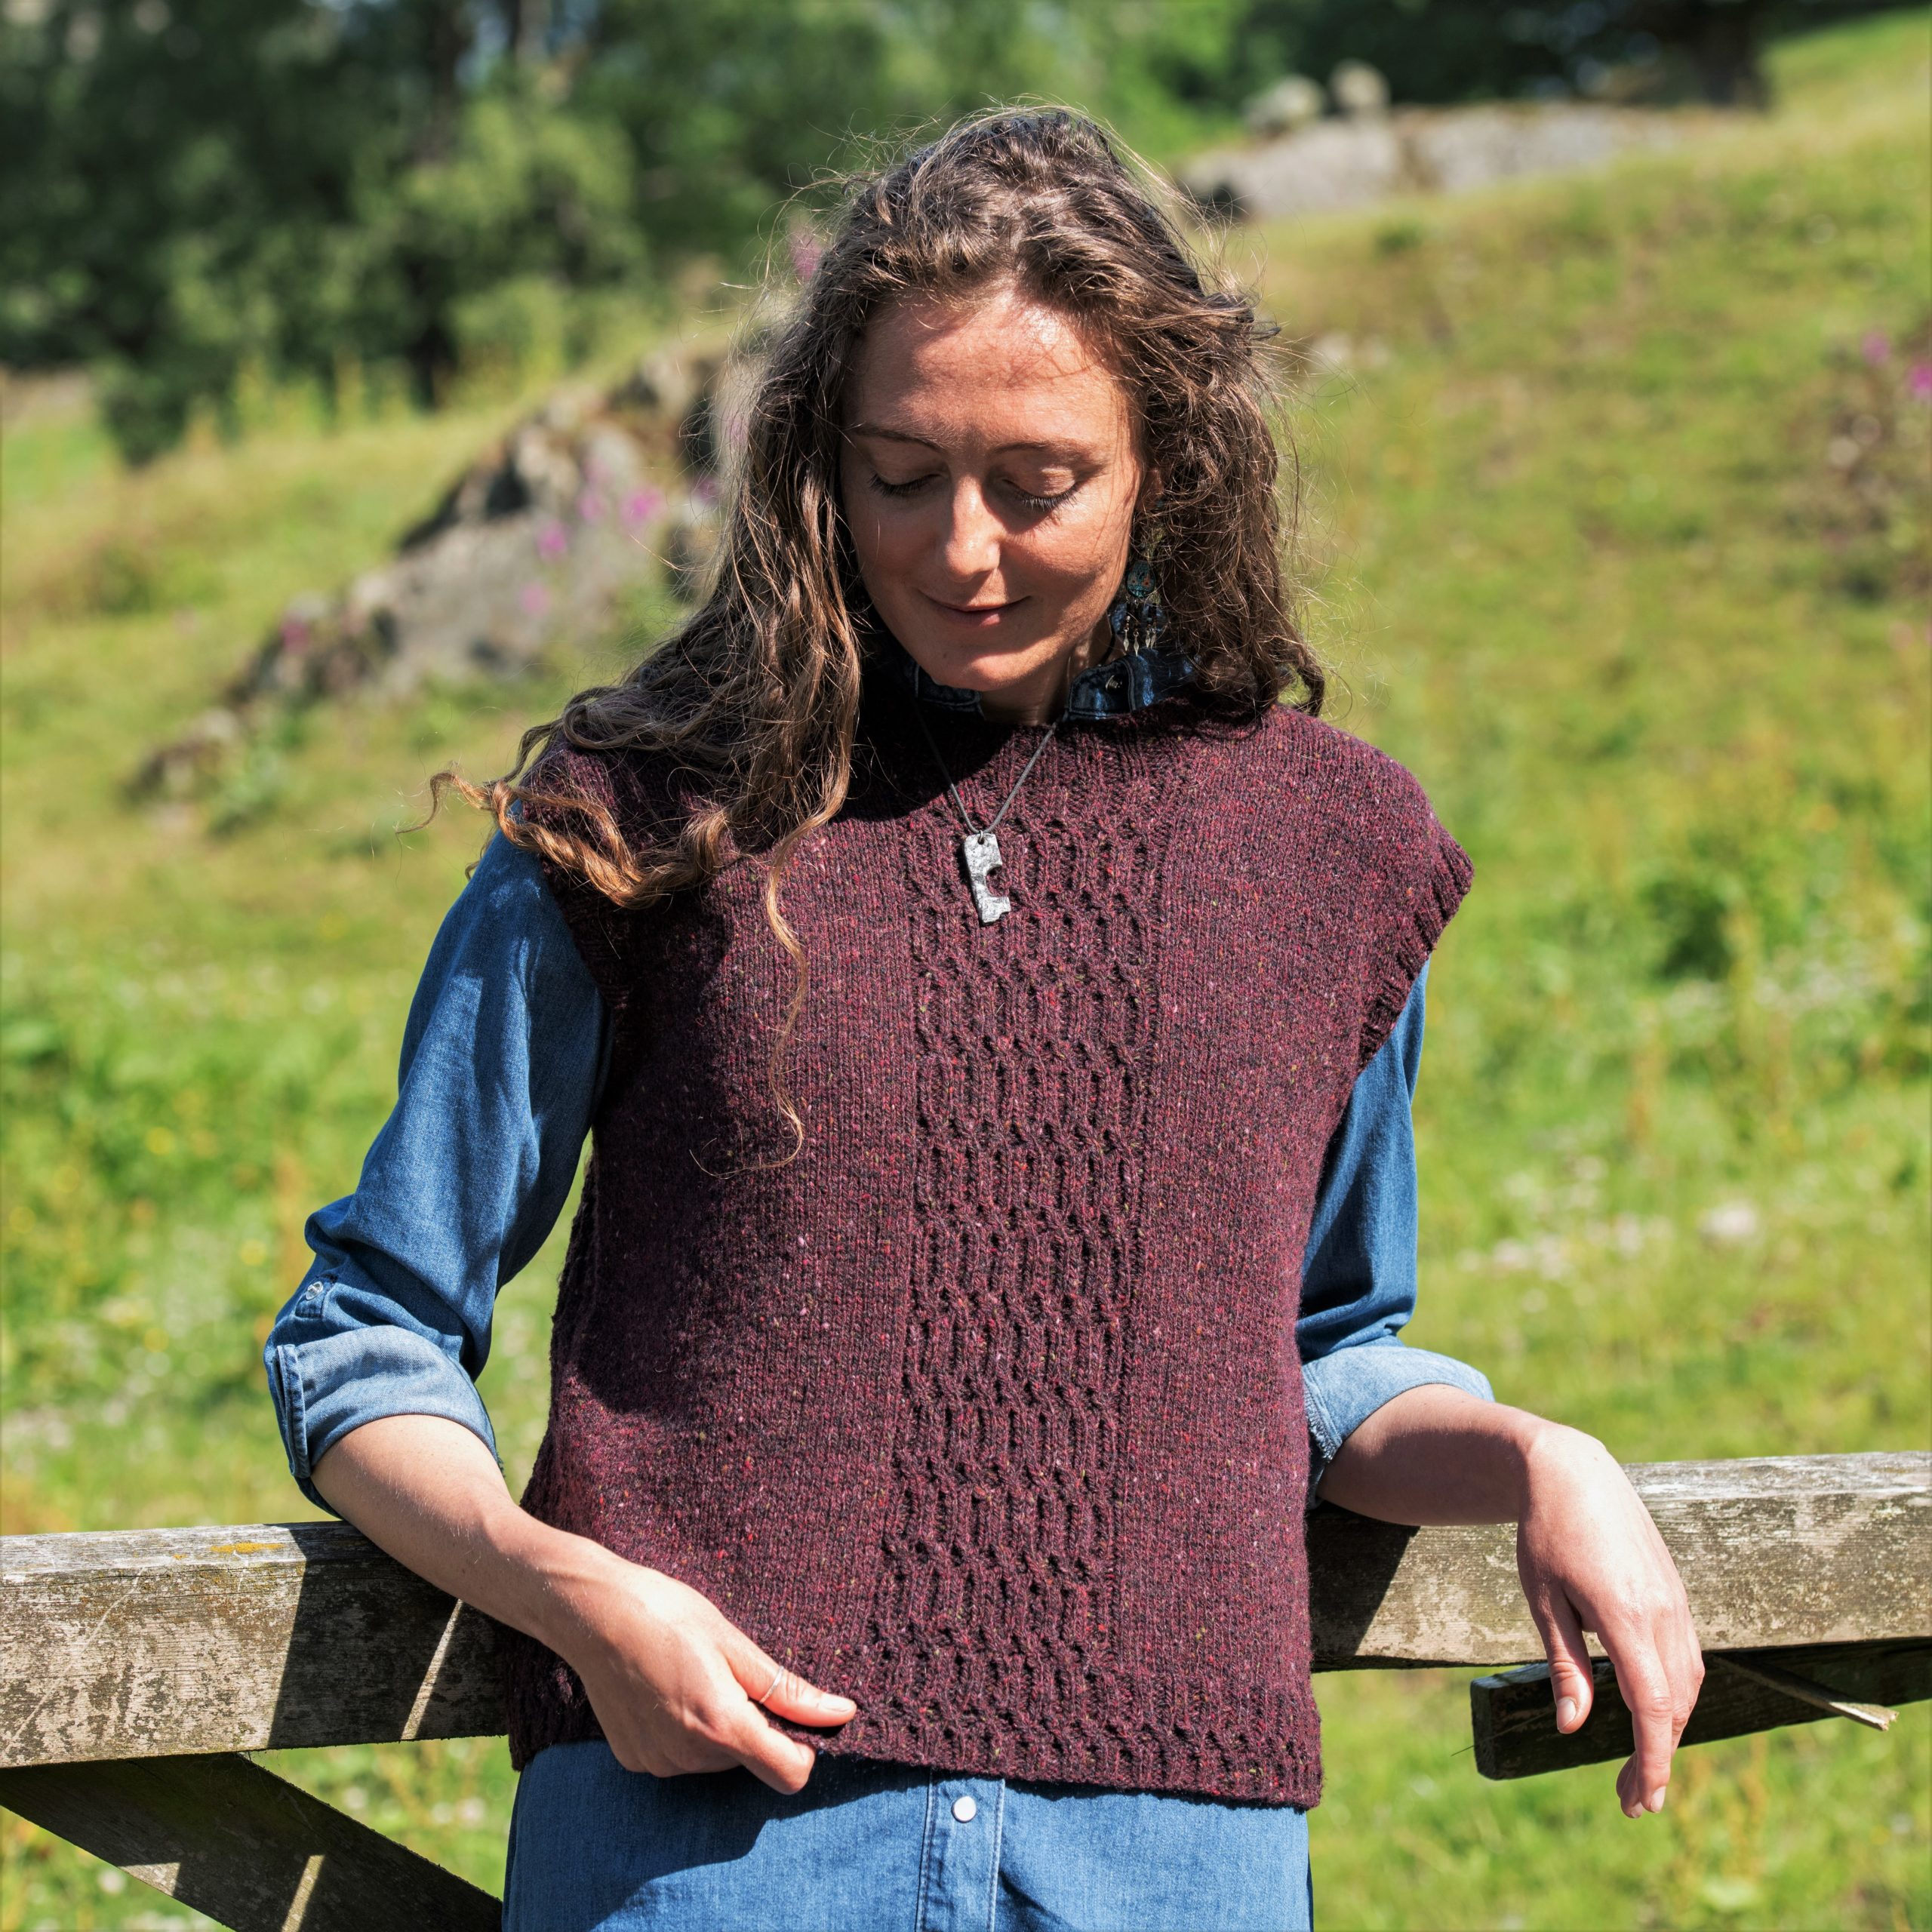 A woman wears a handknit sweater vest over a shirt. the vest has a textured stitch pattern over the centre front.